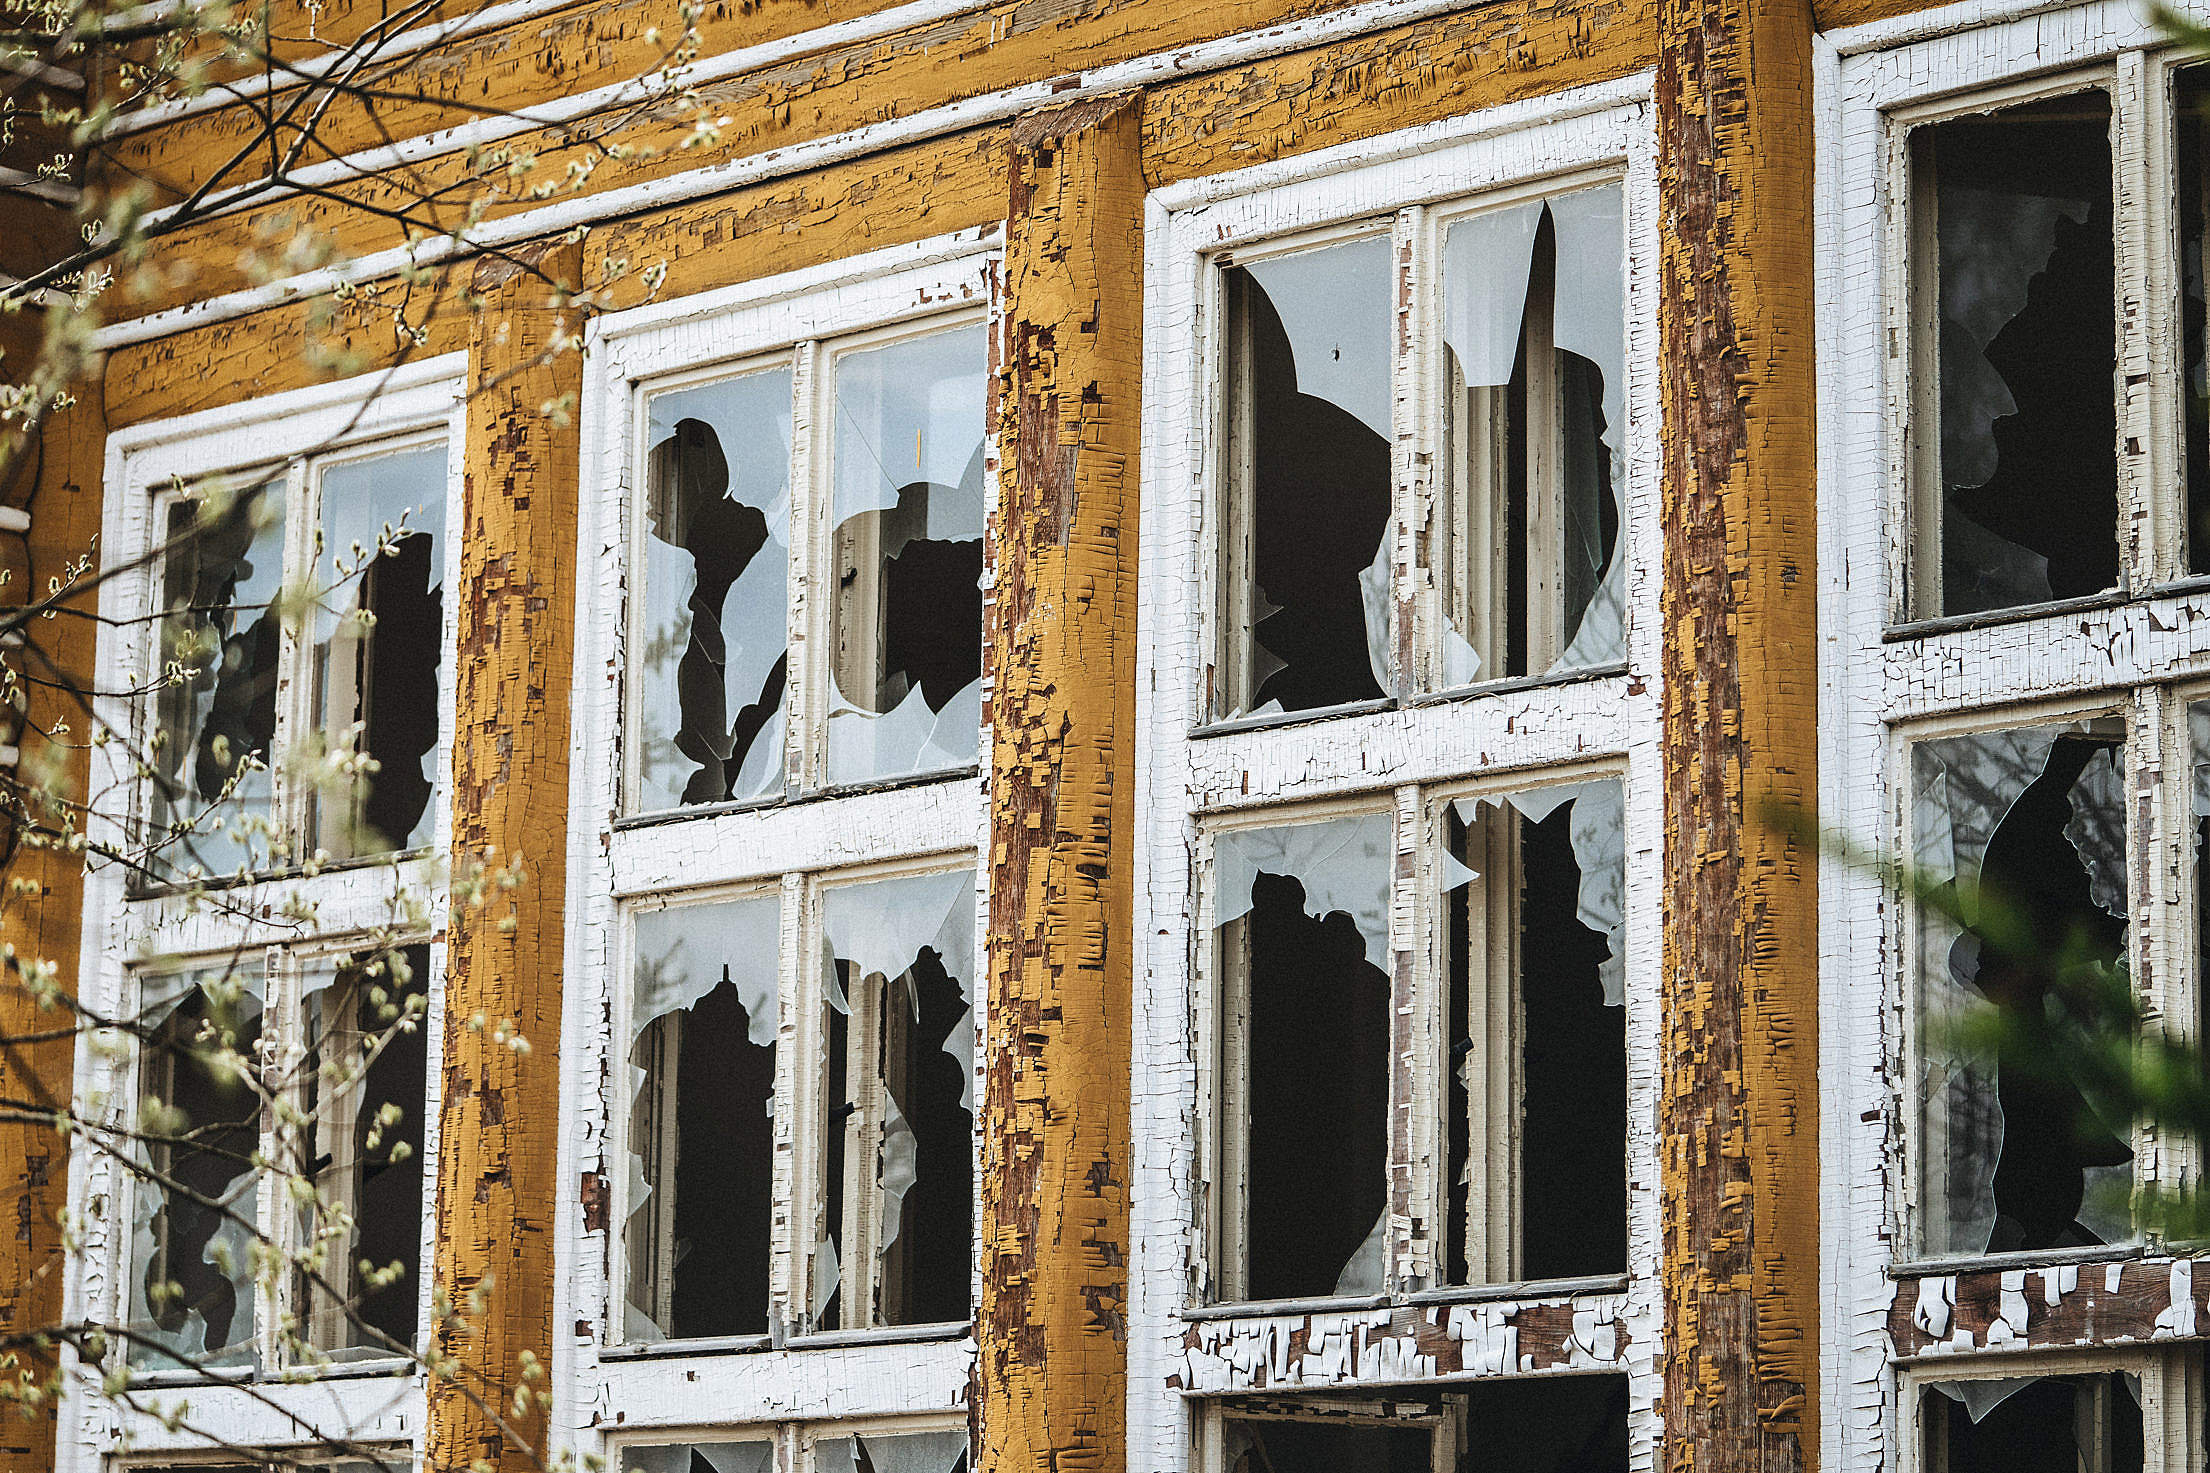 Broken Windows in an Old Dilapidated Building Free Stock Photo